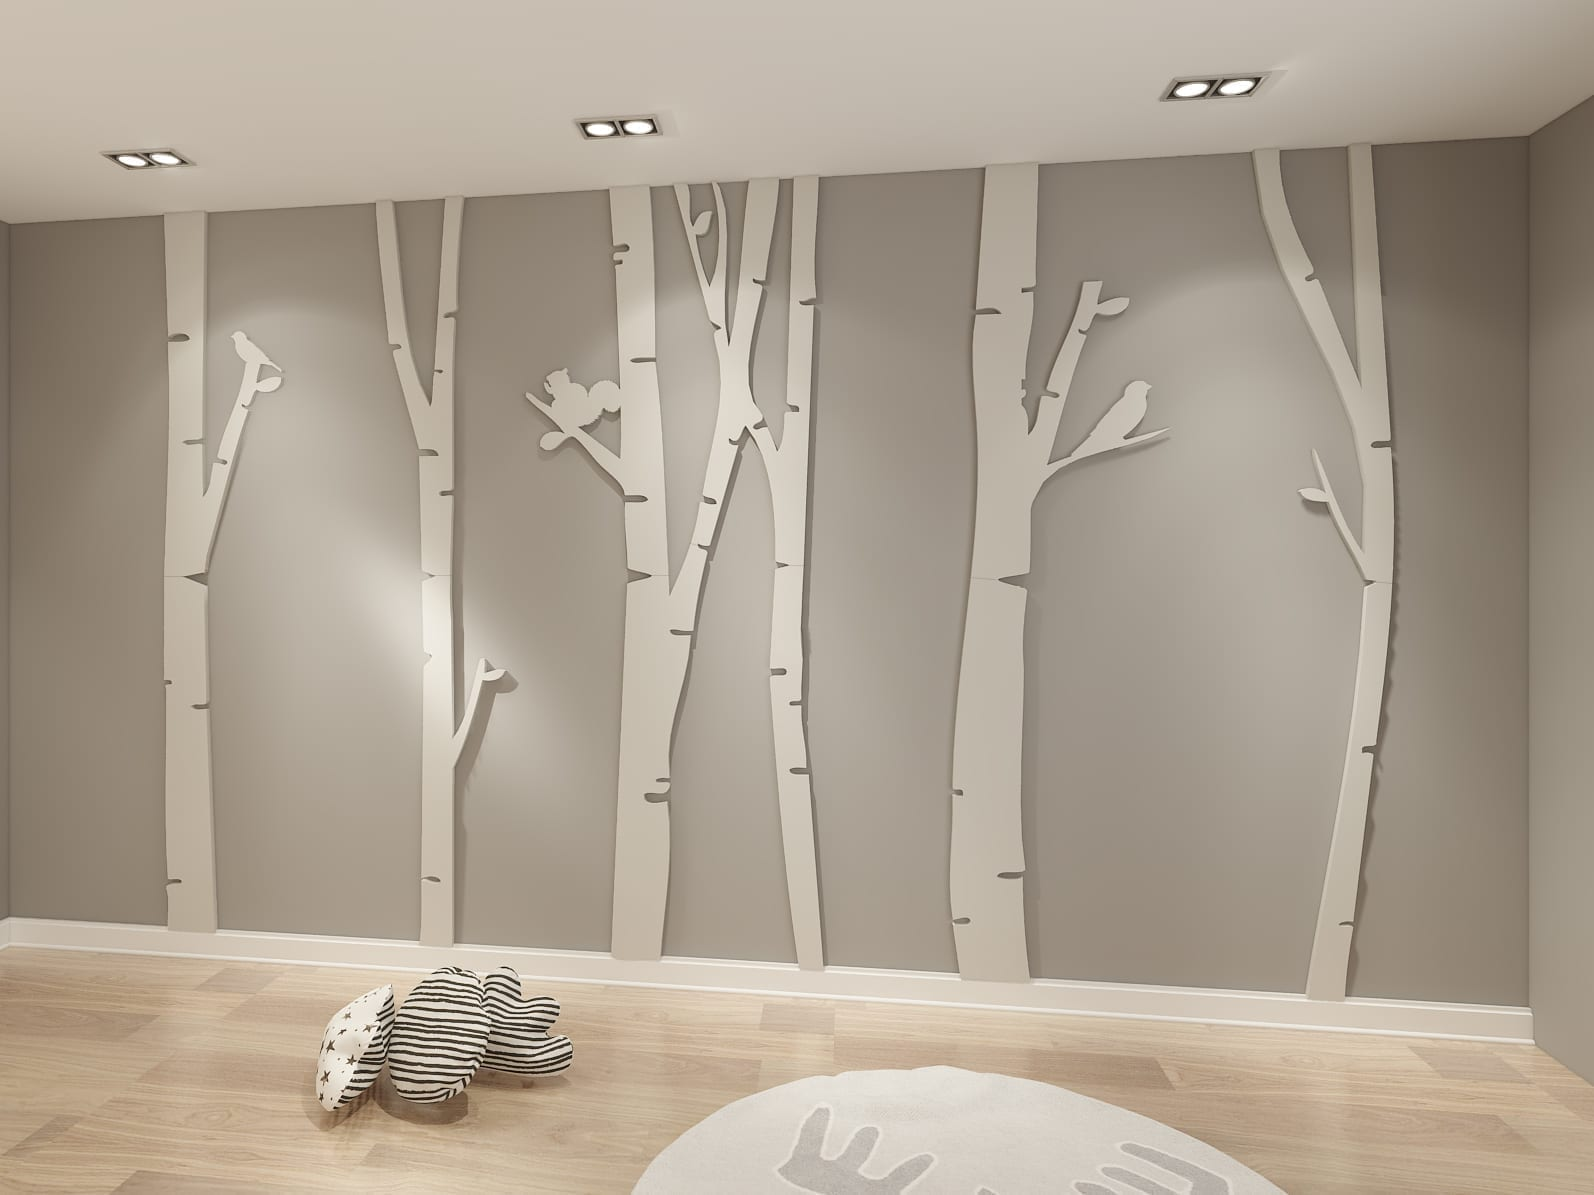 Birch Tree 3D Wall Art - Moonwallstickers.com